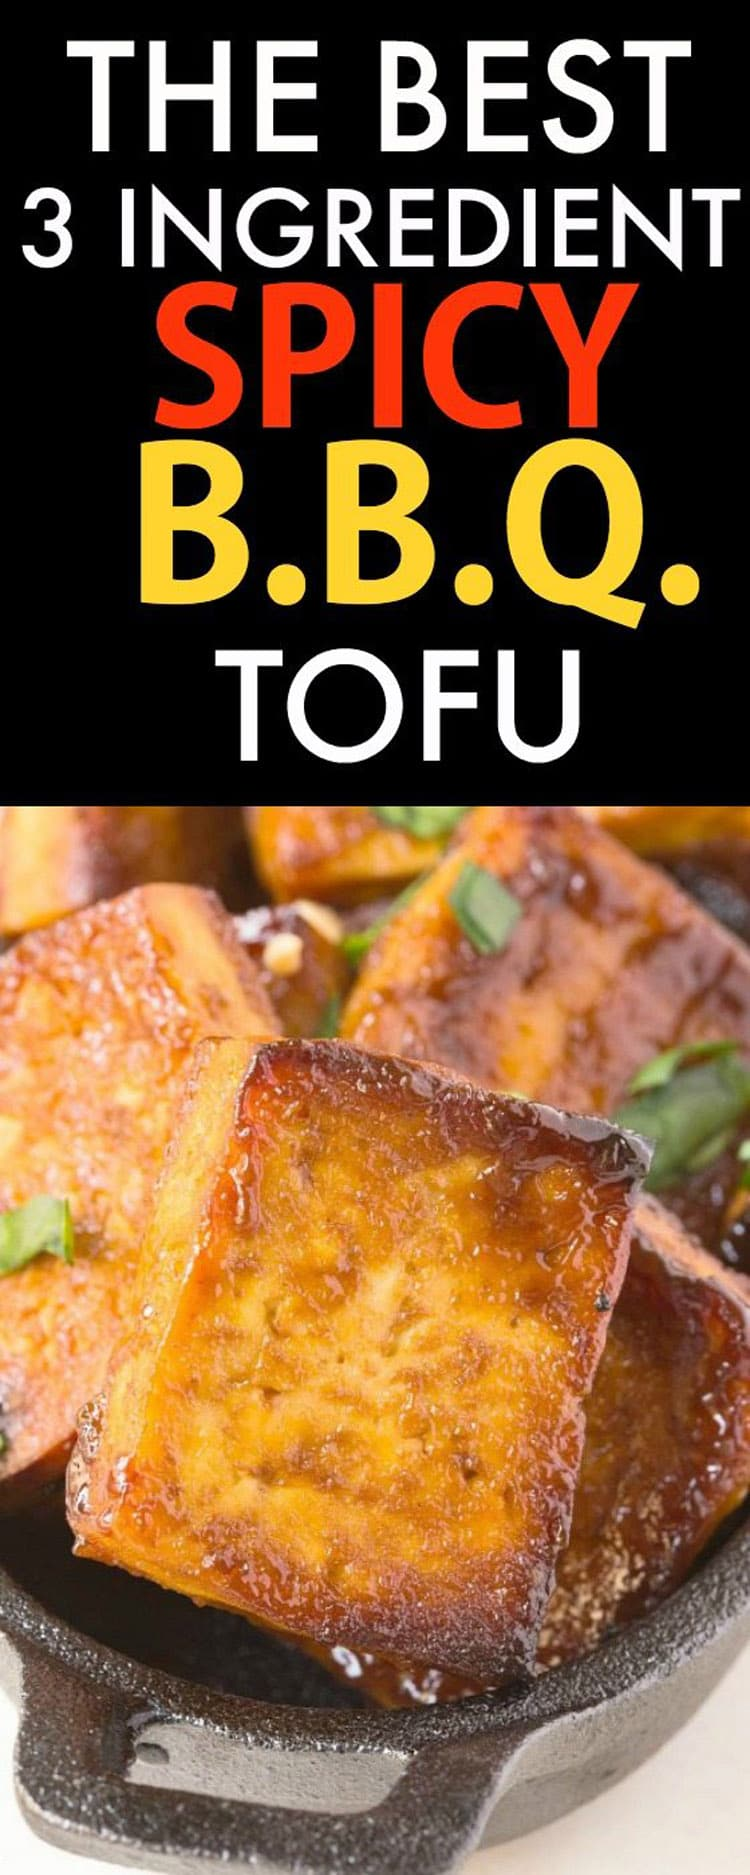 55 Healthy Summer Side Dishes - 3 Ingredient Spicy Barbecue Tofu